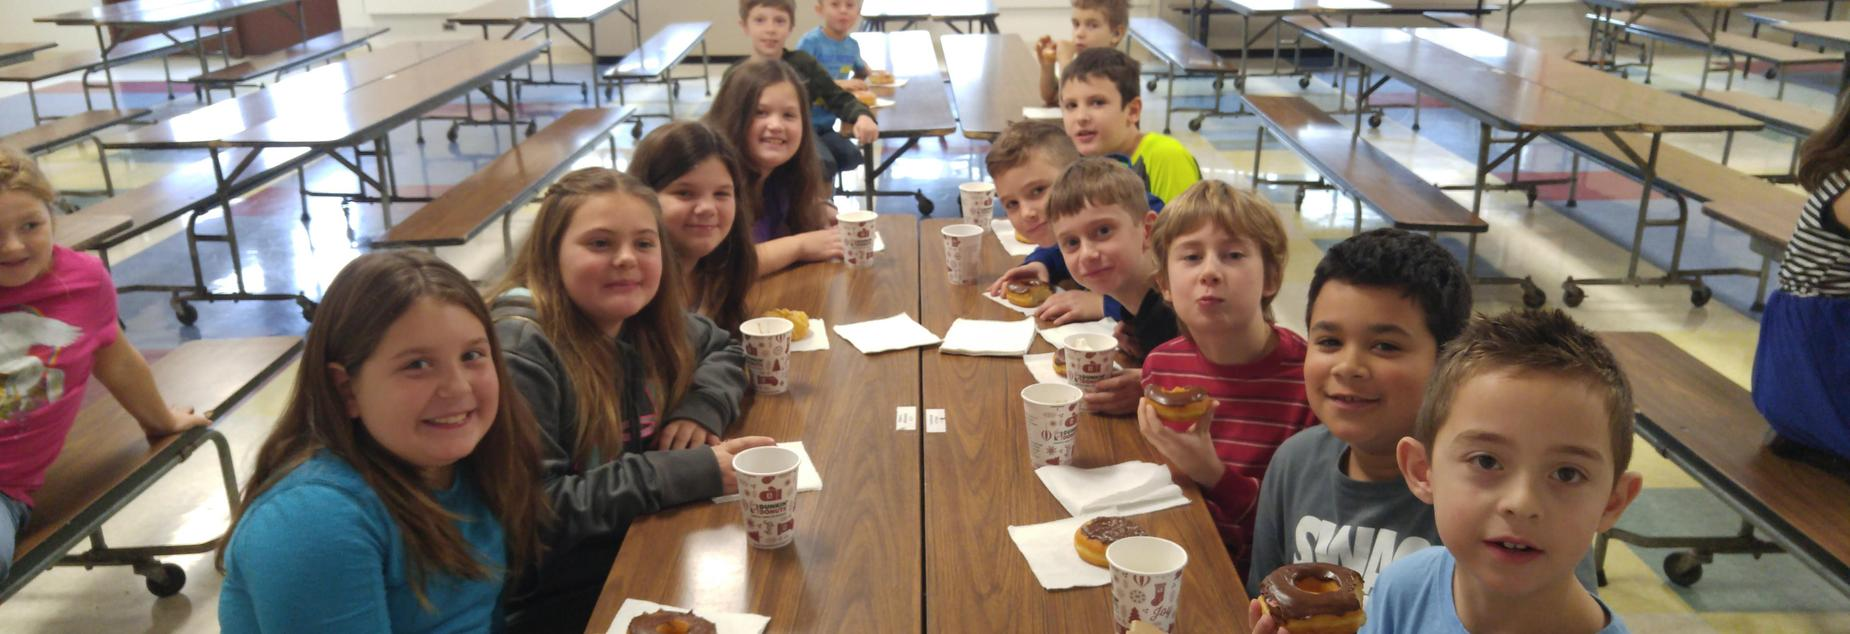 P.R.I.D.E. Shout Out Winners enjoying a special treat.